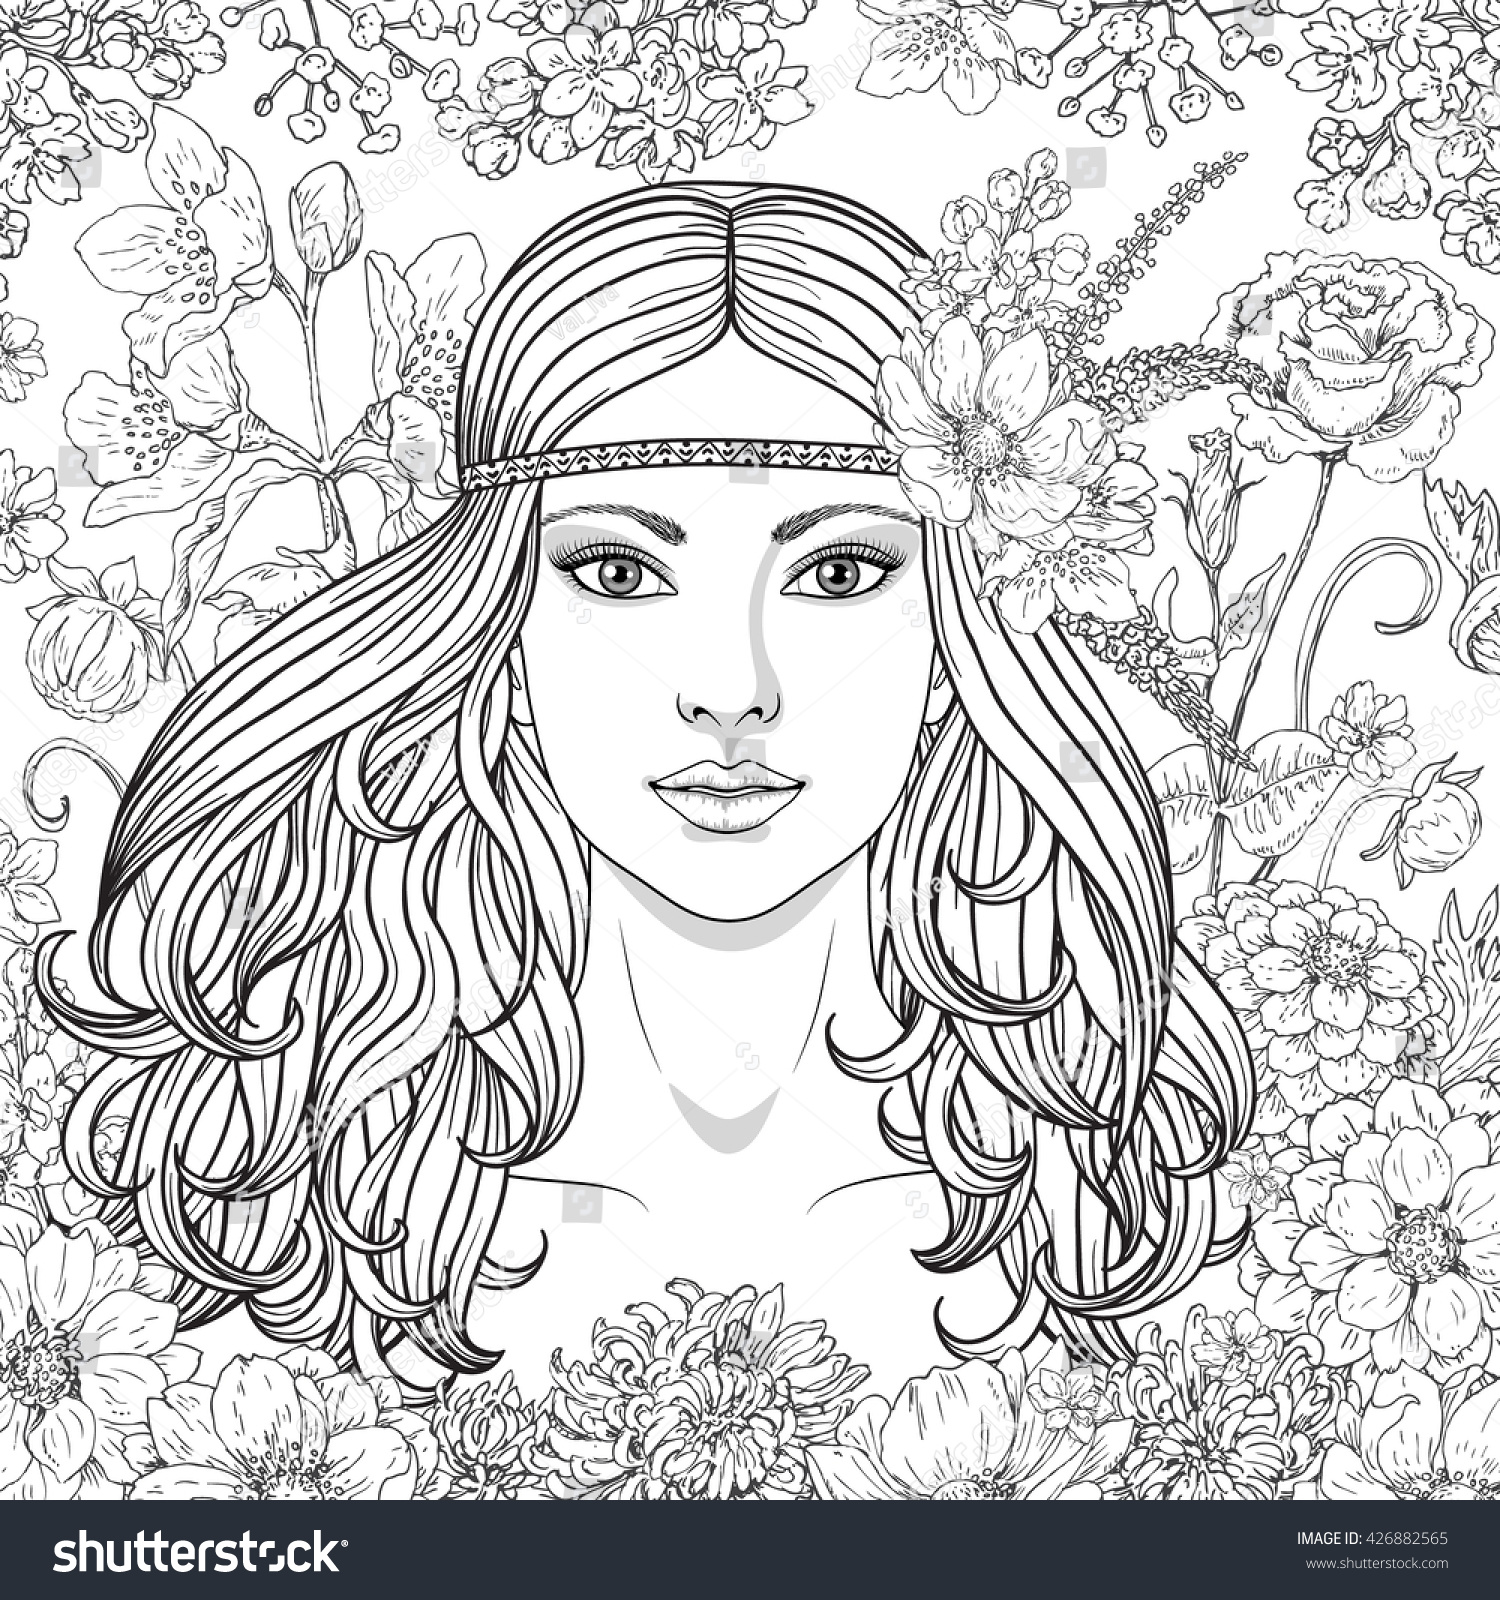 Hand Drawn Girl Flowers Doodle Floral Stock Vector